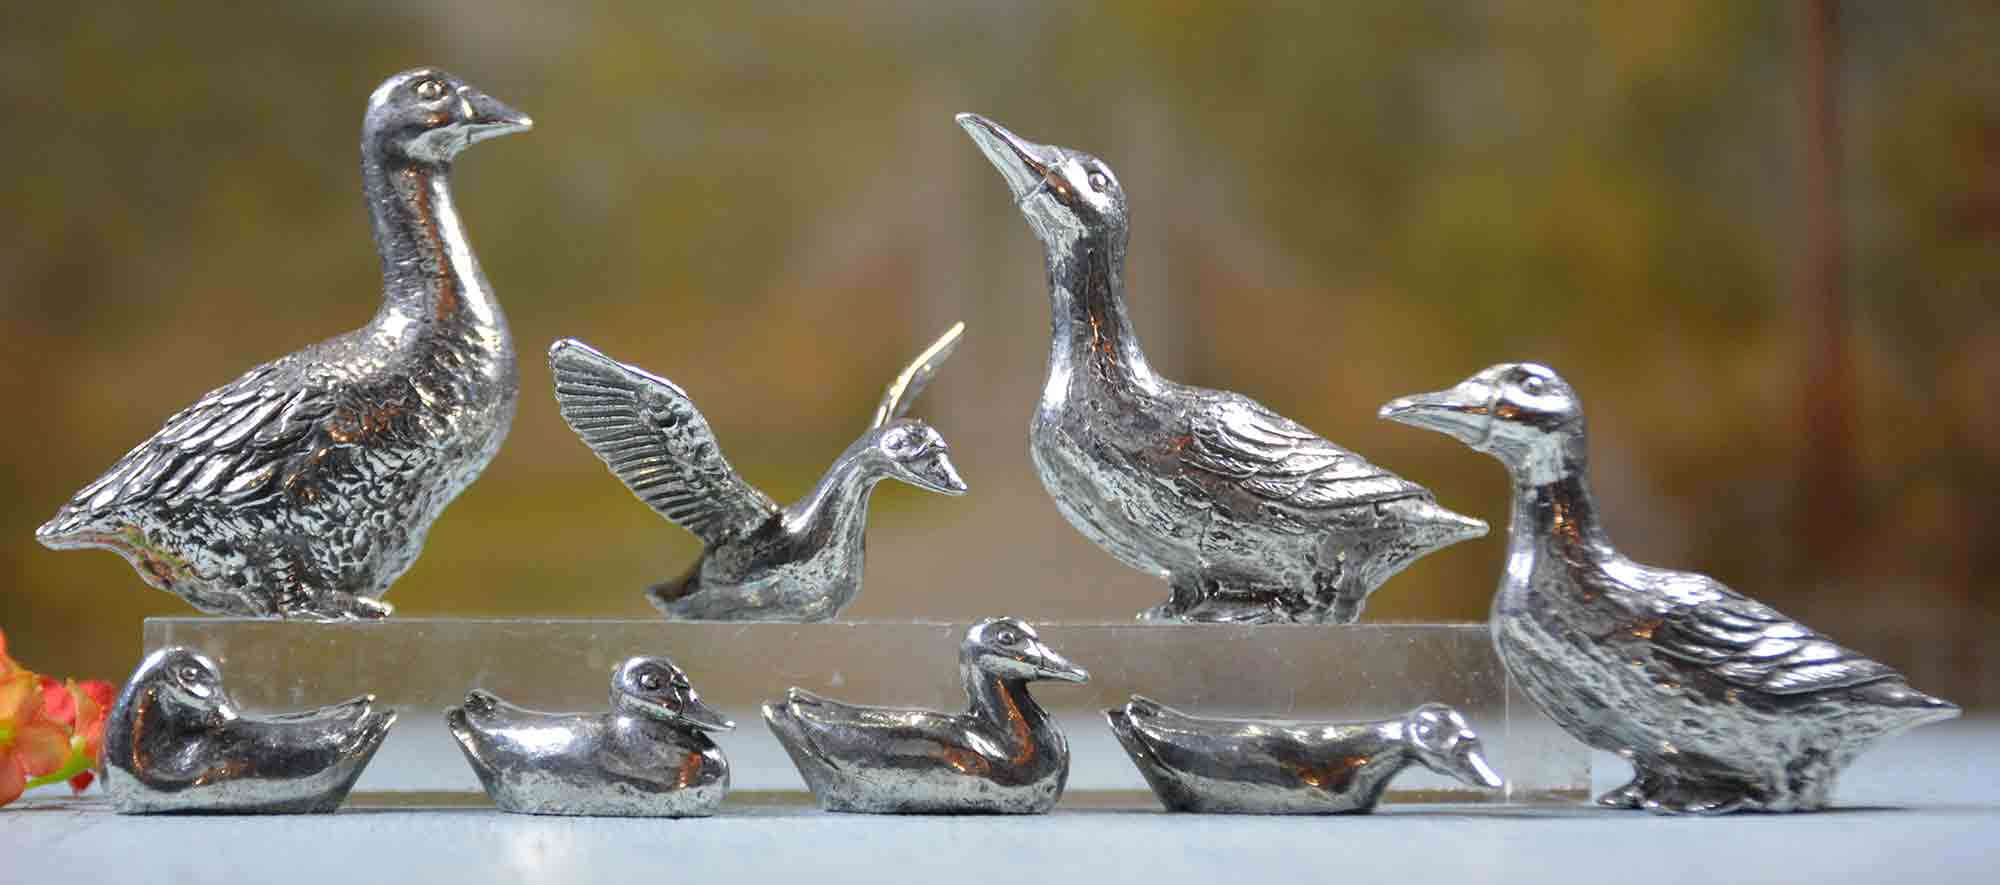 Collection animaux etain aspect argent massif